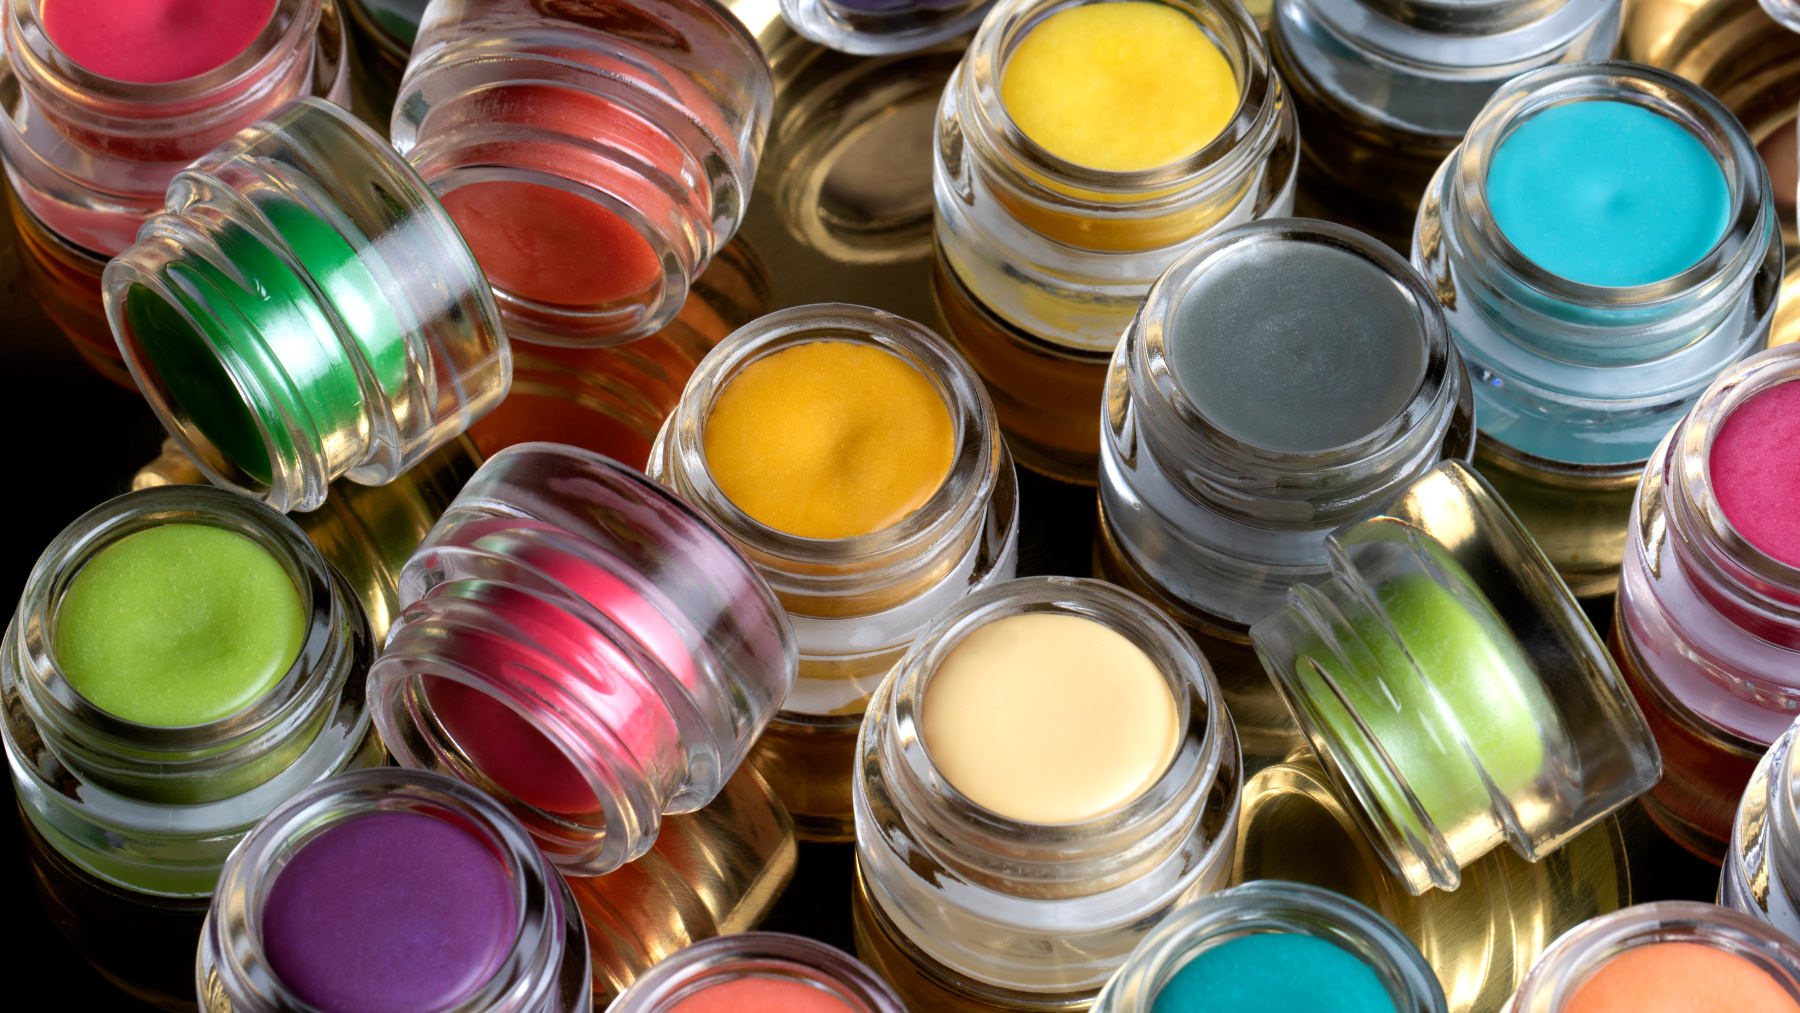 A selection of solid perfumes